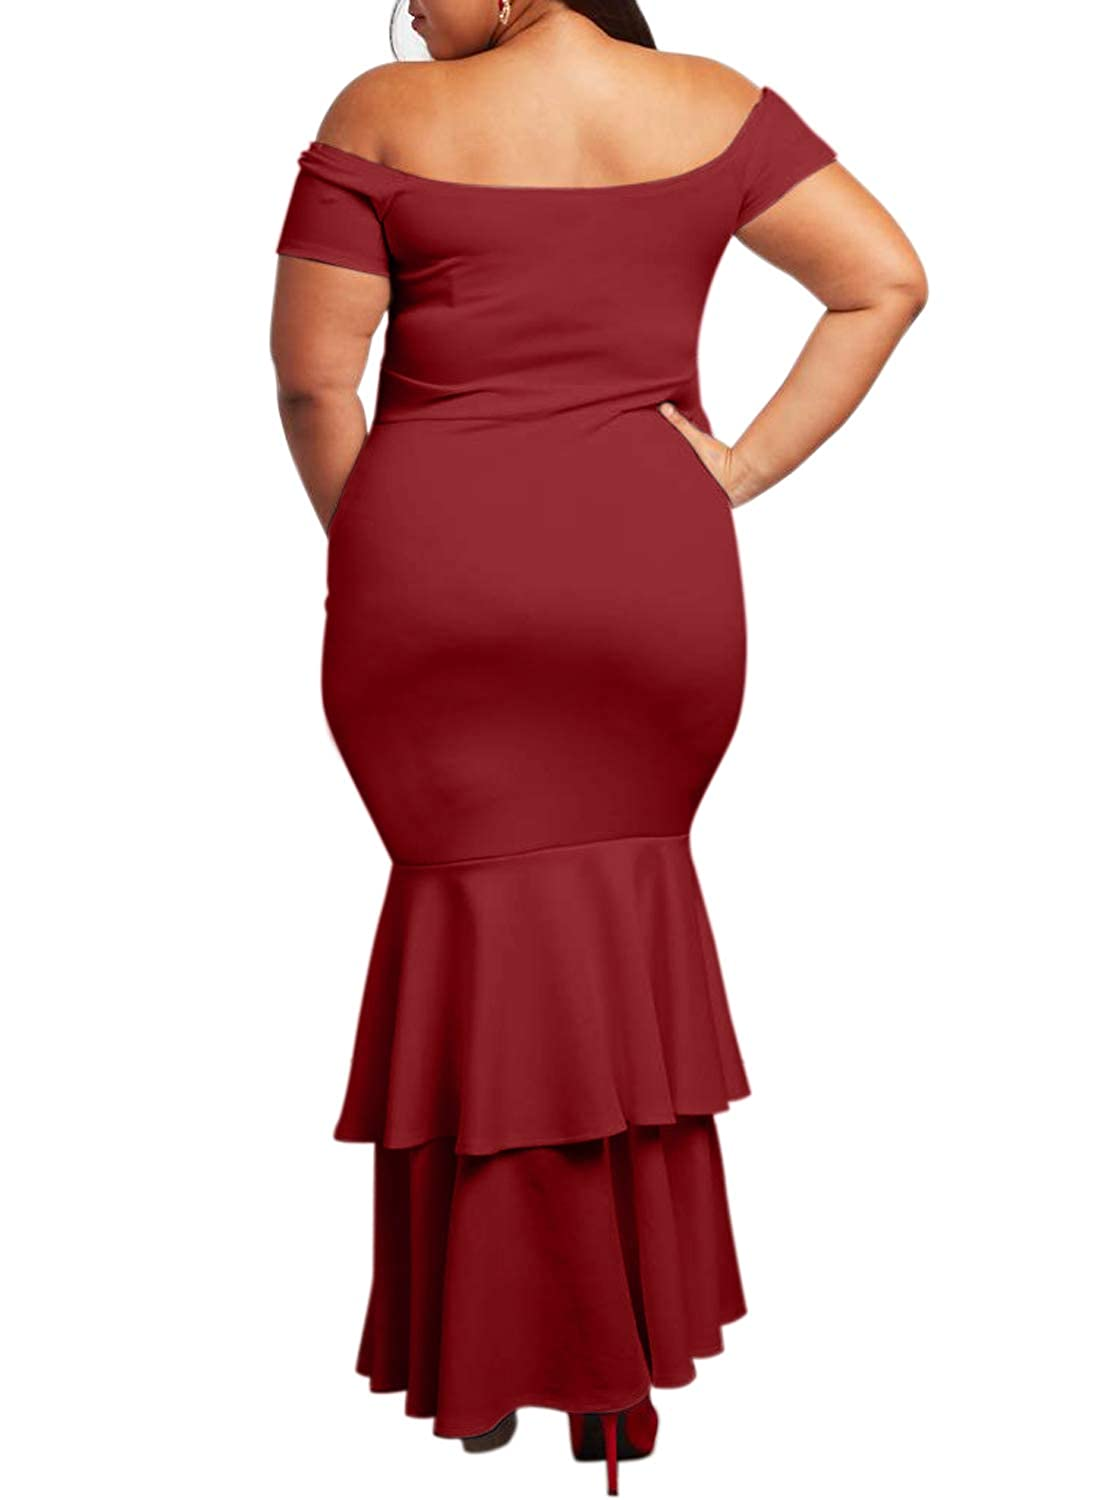 0a73aef515e Ecosunny Womens Off Shoulder Bodycon Ruffle Mermaid Plus Size Party Maxi  Dress at Amazon Women s Clothing store